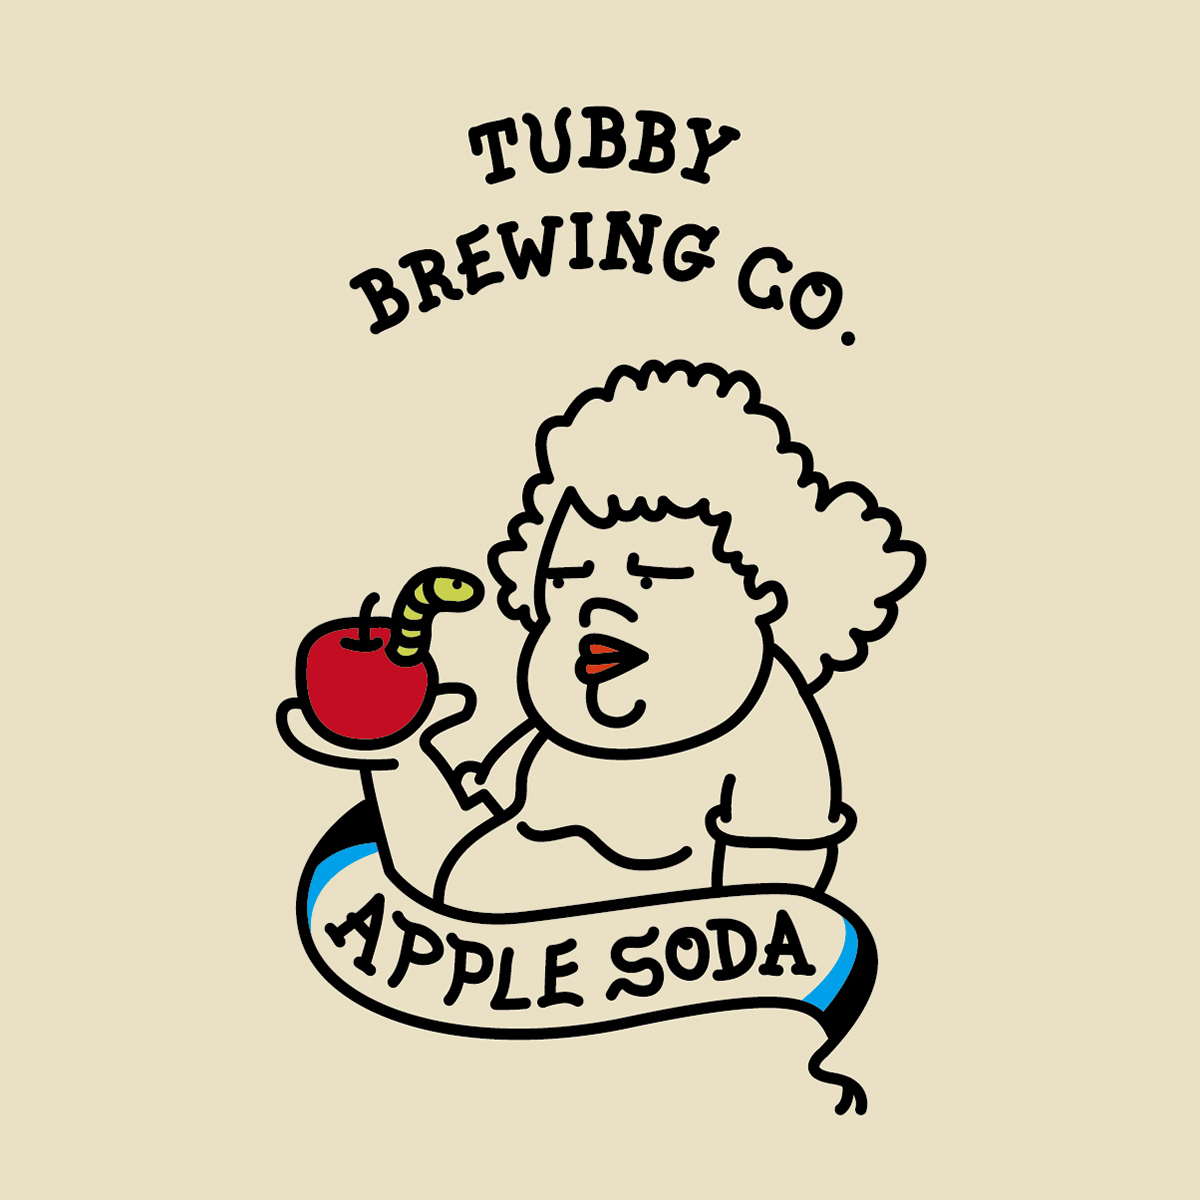 Tubby Brewing Co. by Shu-Shan Chen